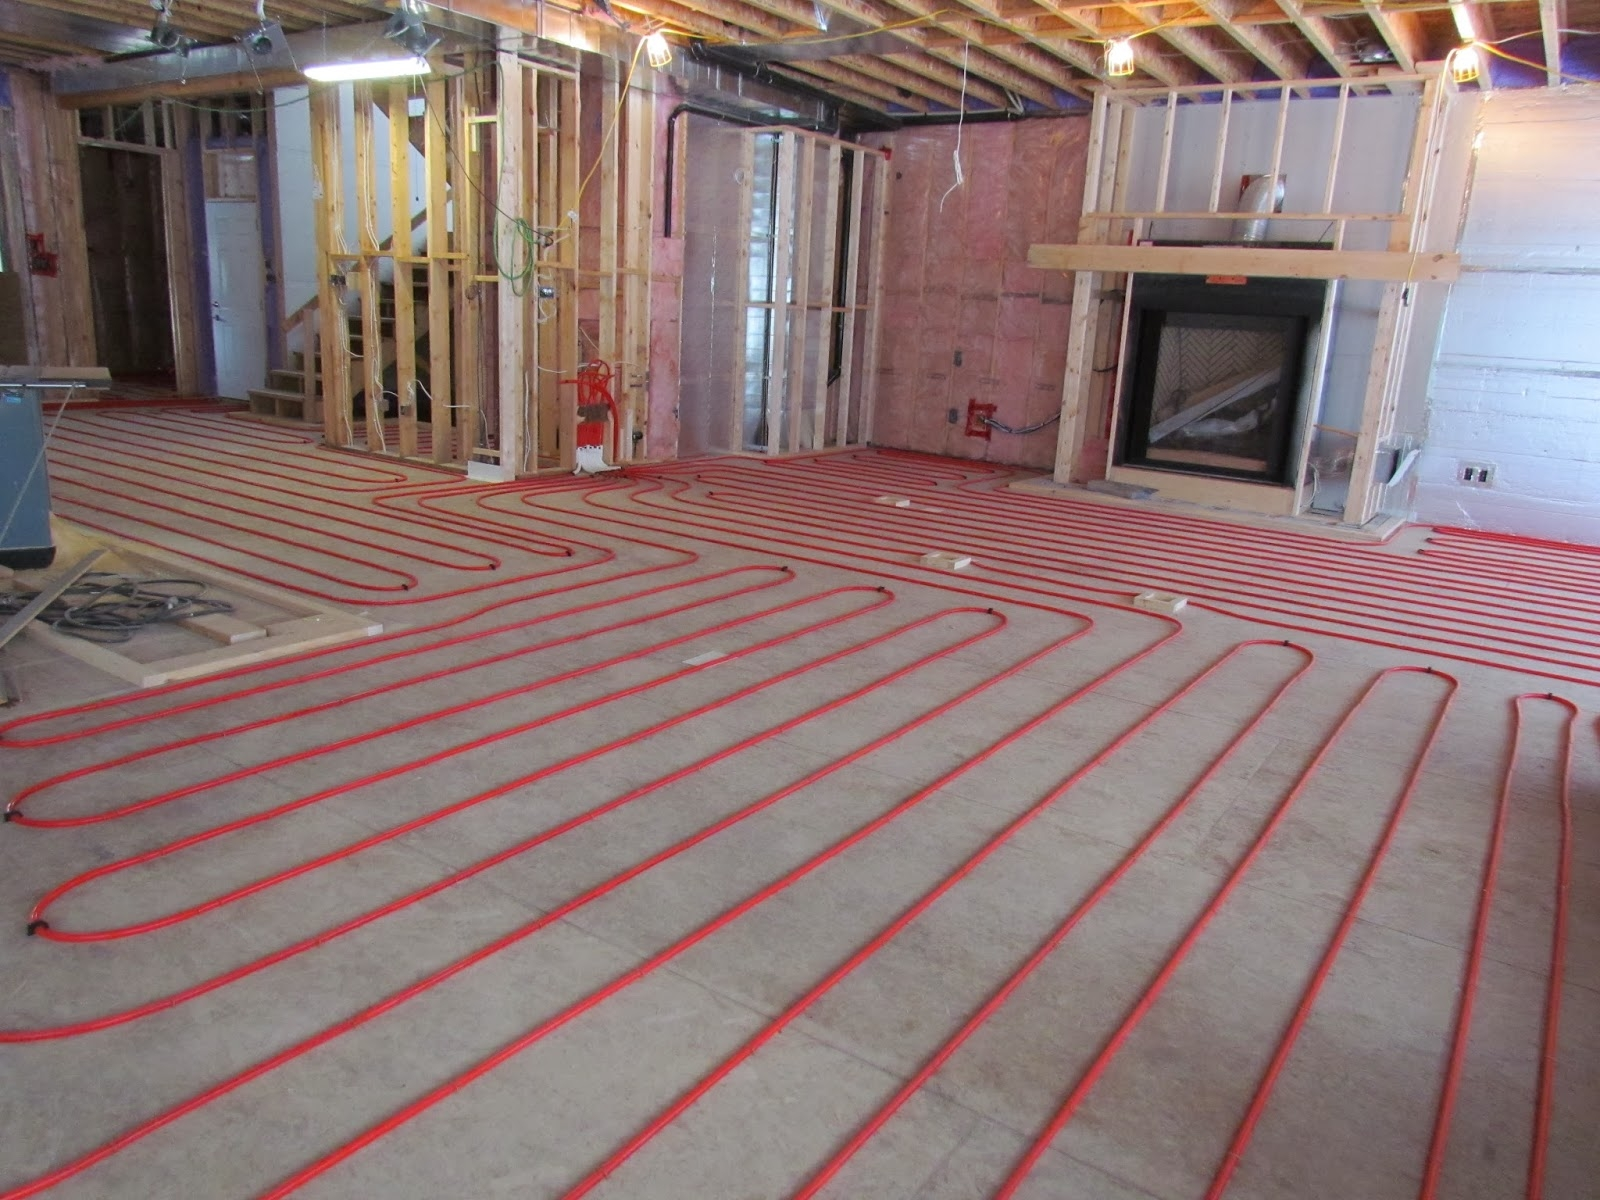 Heating A Basement Floor Heating A Basement Floor ask rob radiant in floor heating in the basement 1600 X 1200